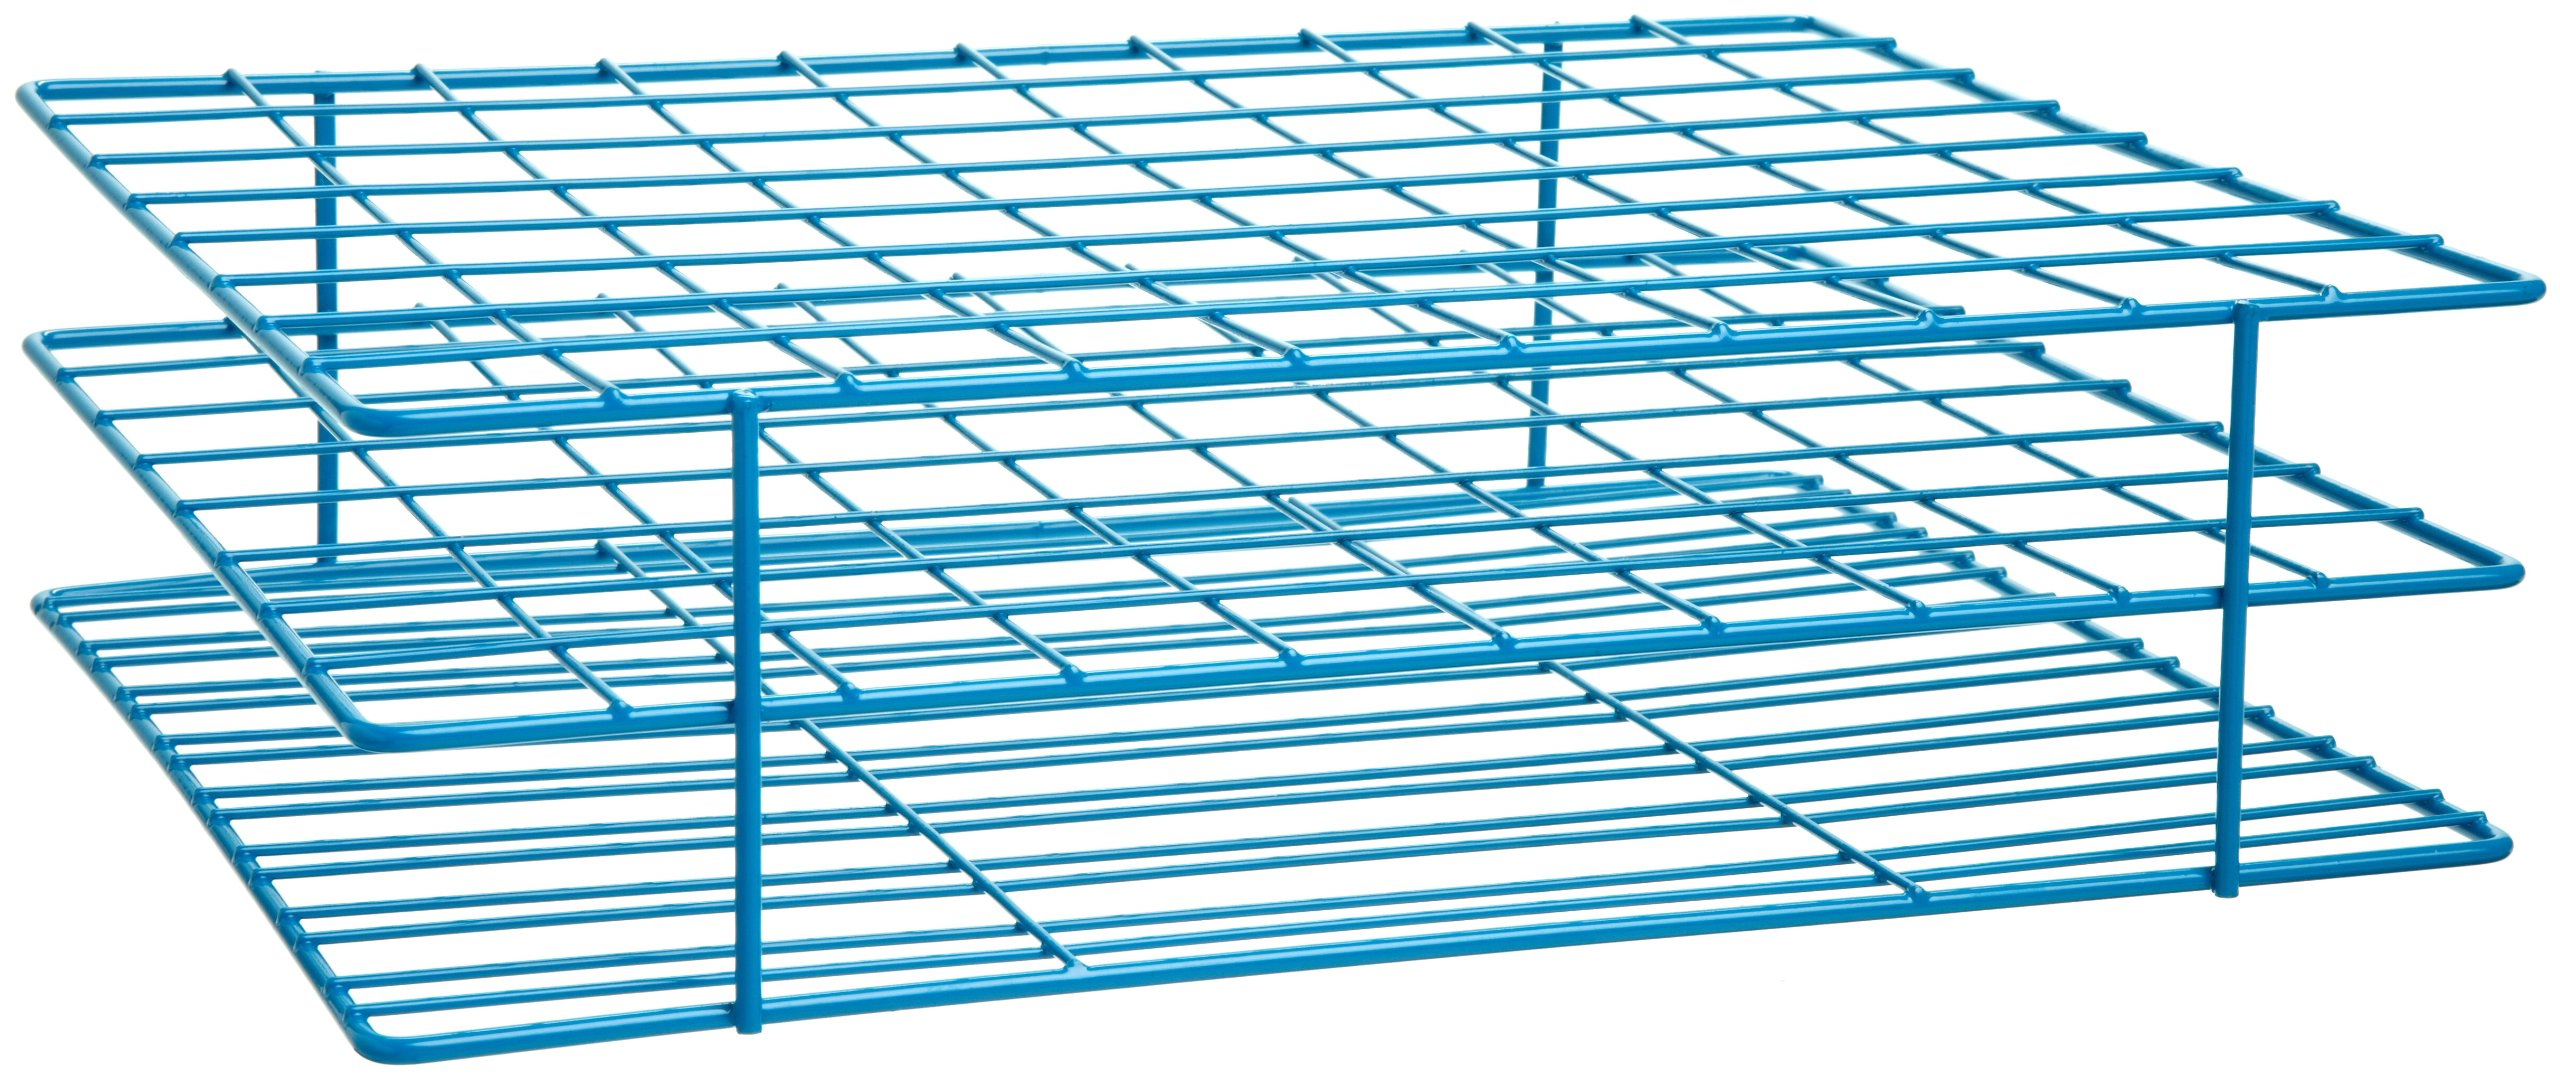 Bel-Art F18773-0001 Poxygrid Test Tube Rack; 20-25mm, 80 Places, 11⁹/₁₆ x 9⁹/₁₆ x 3¹/₄ in., Blue by SP Scienceware